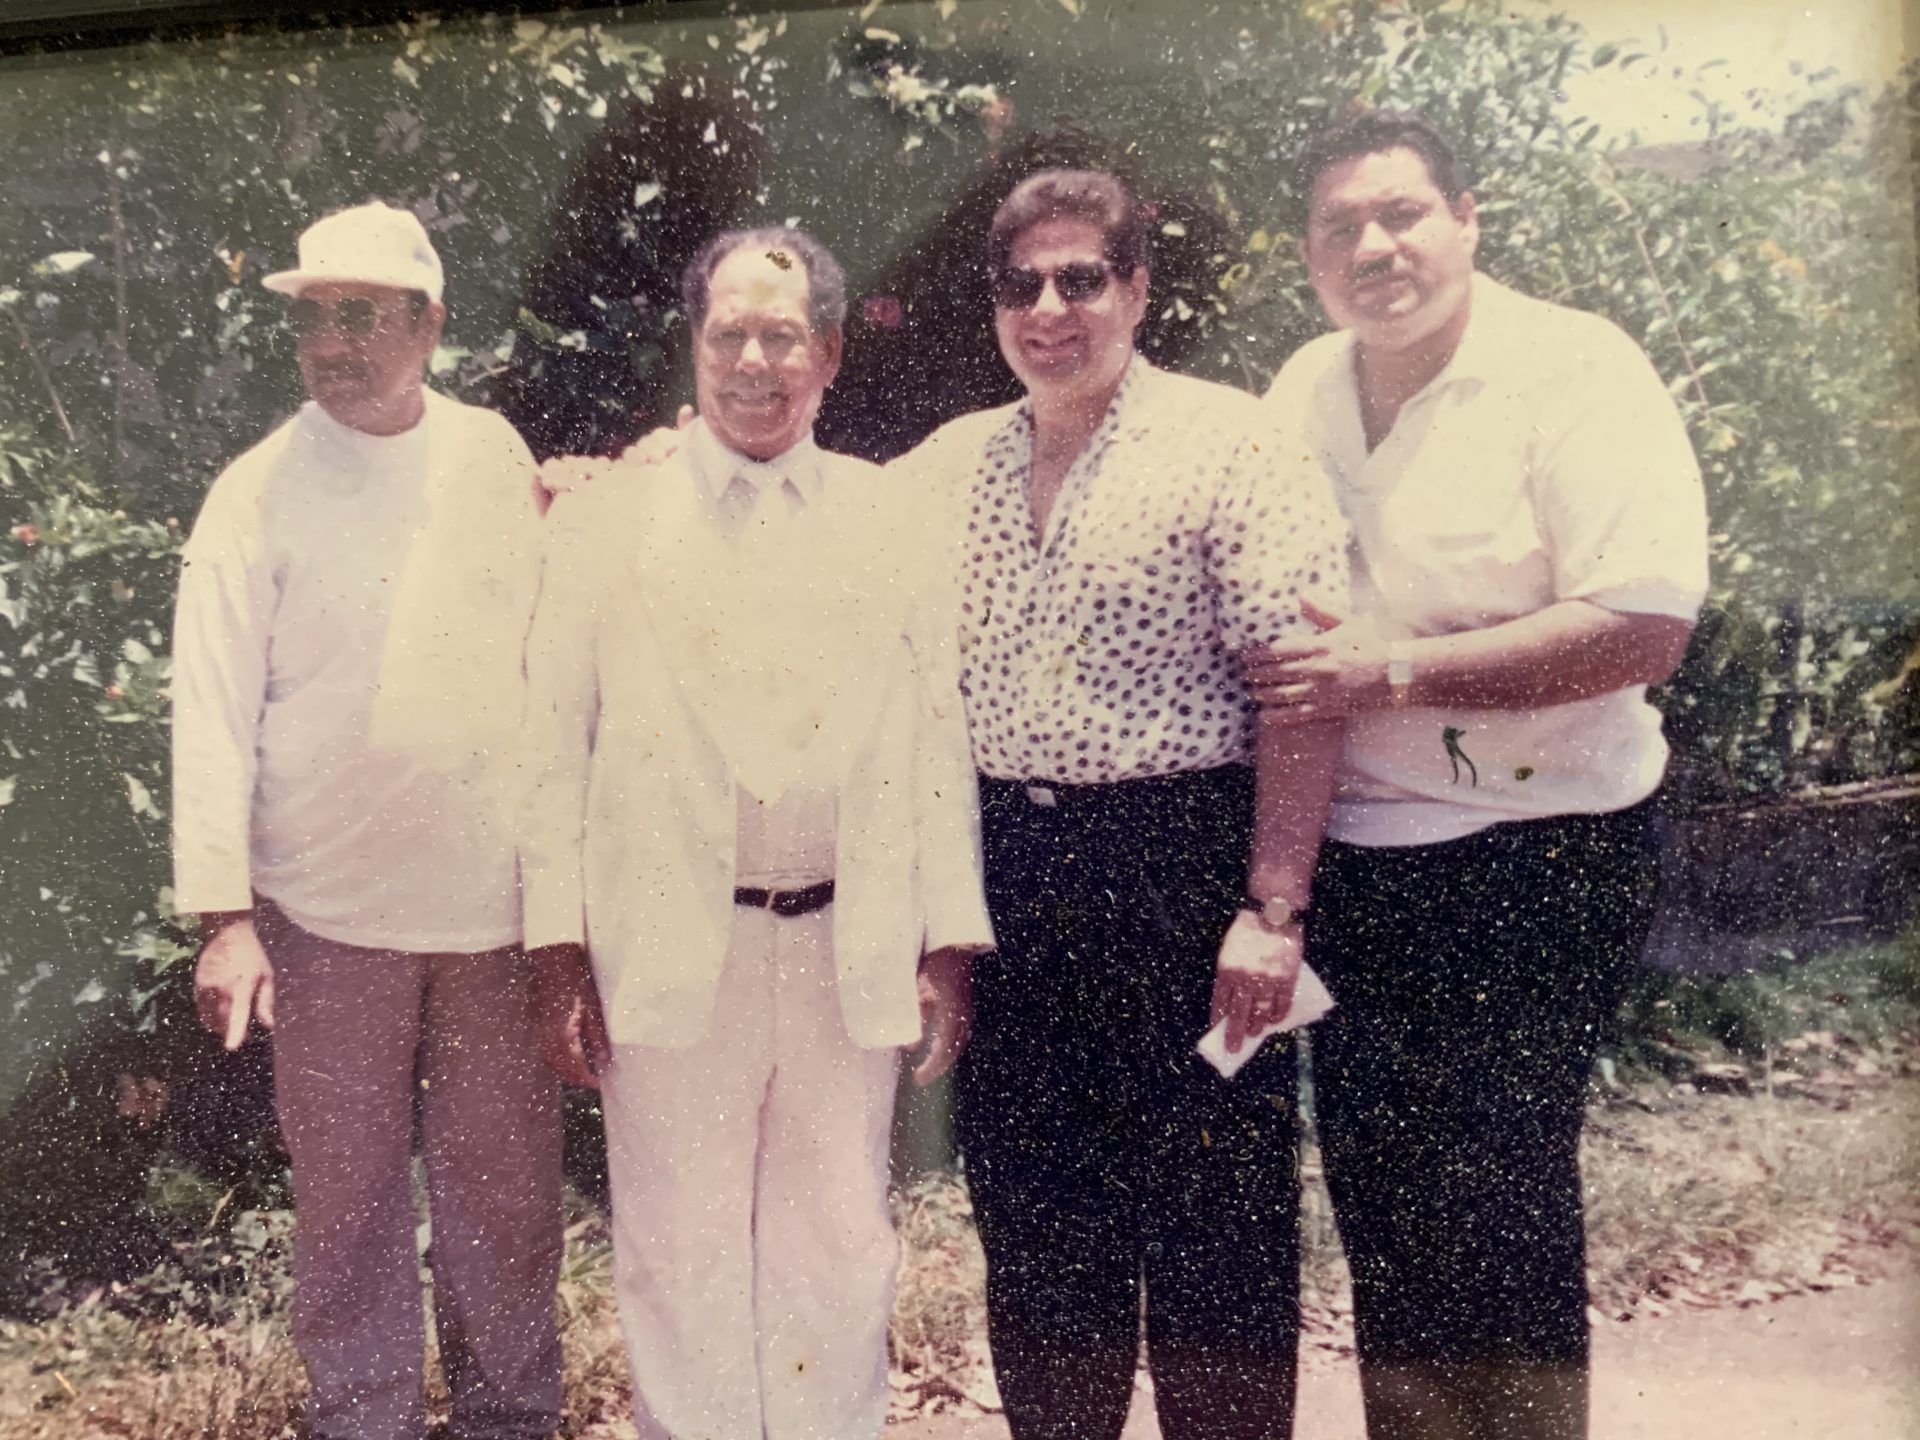 Hey brother Lee. Here we are the Perez clan. Santos, Papi, me and you.  RIP my brother.